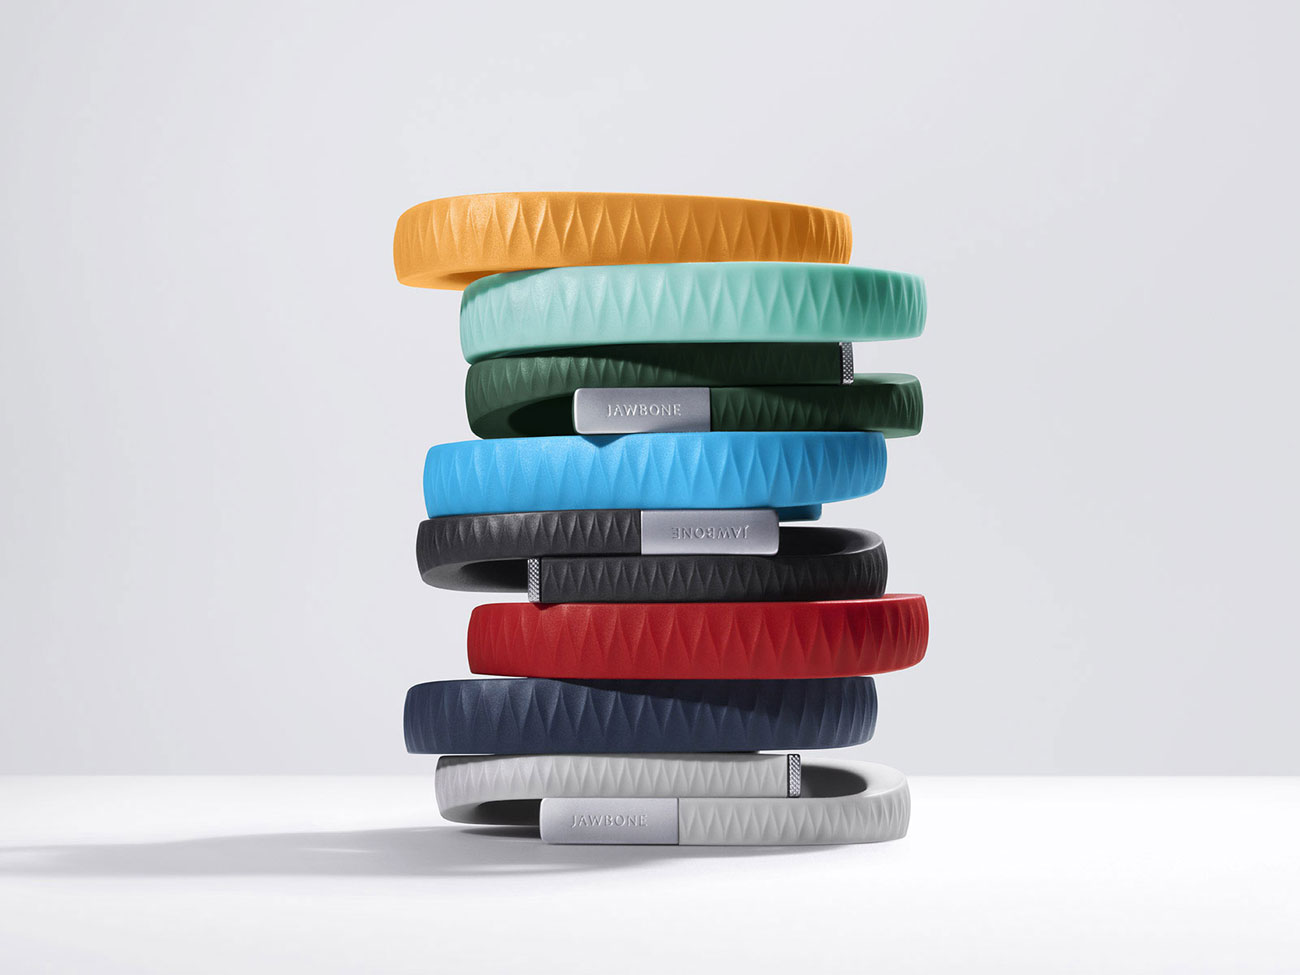 Activity Trackers – Jawbone Up: An easy-to-wear and insightful fitness pal